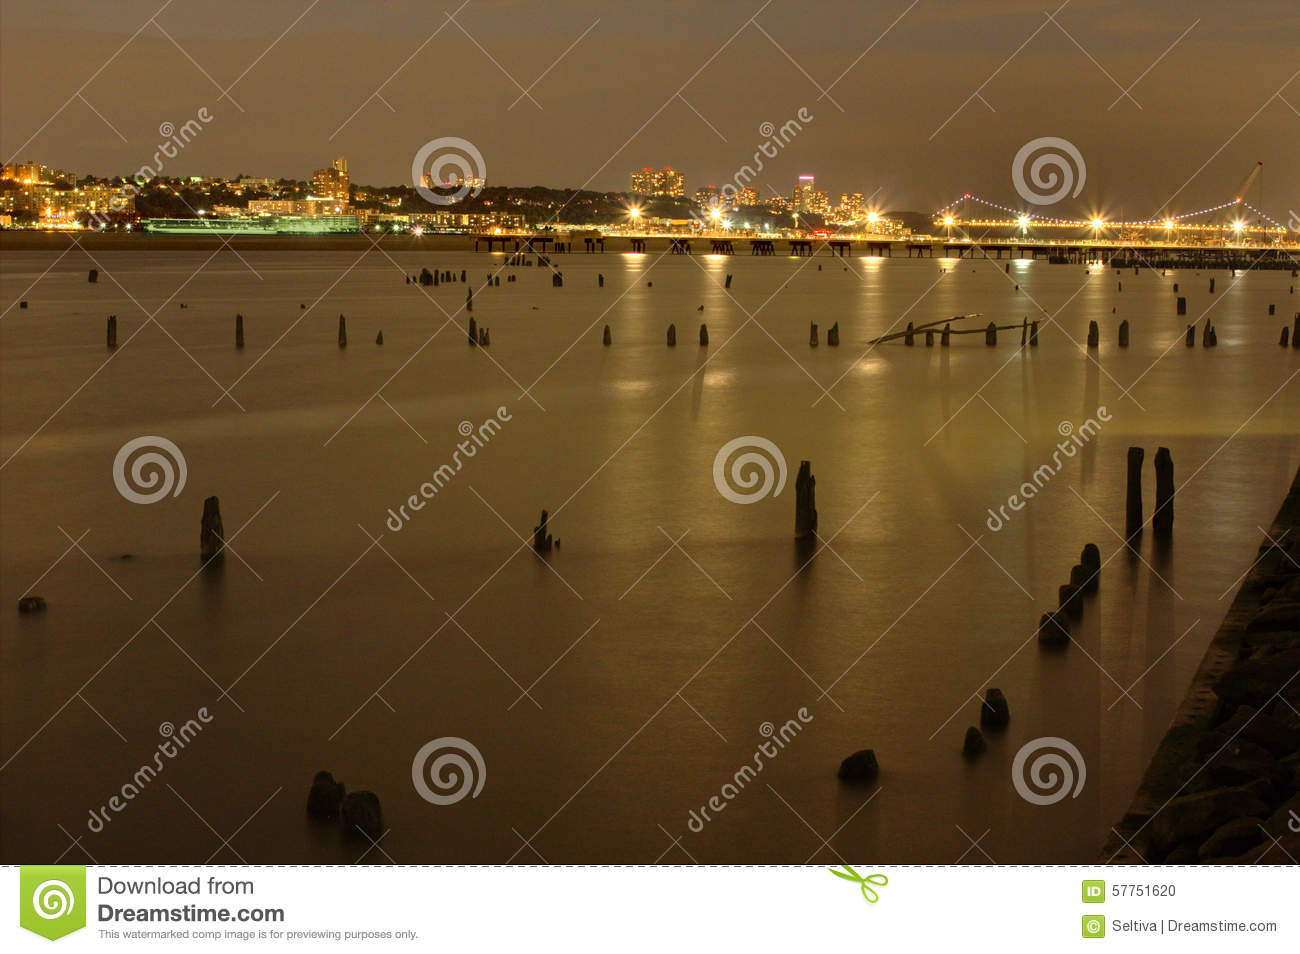 View of the Hudson River and New Jersey at night from Manhattan in New York City